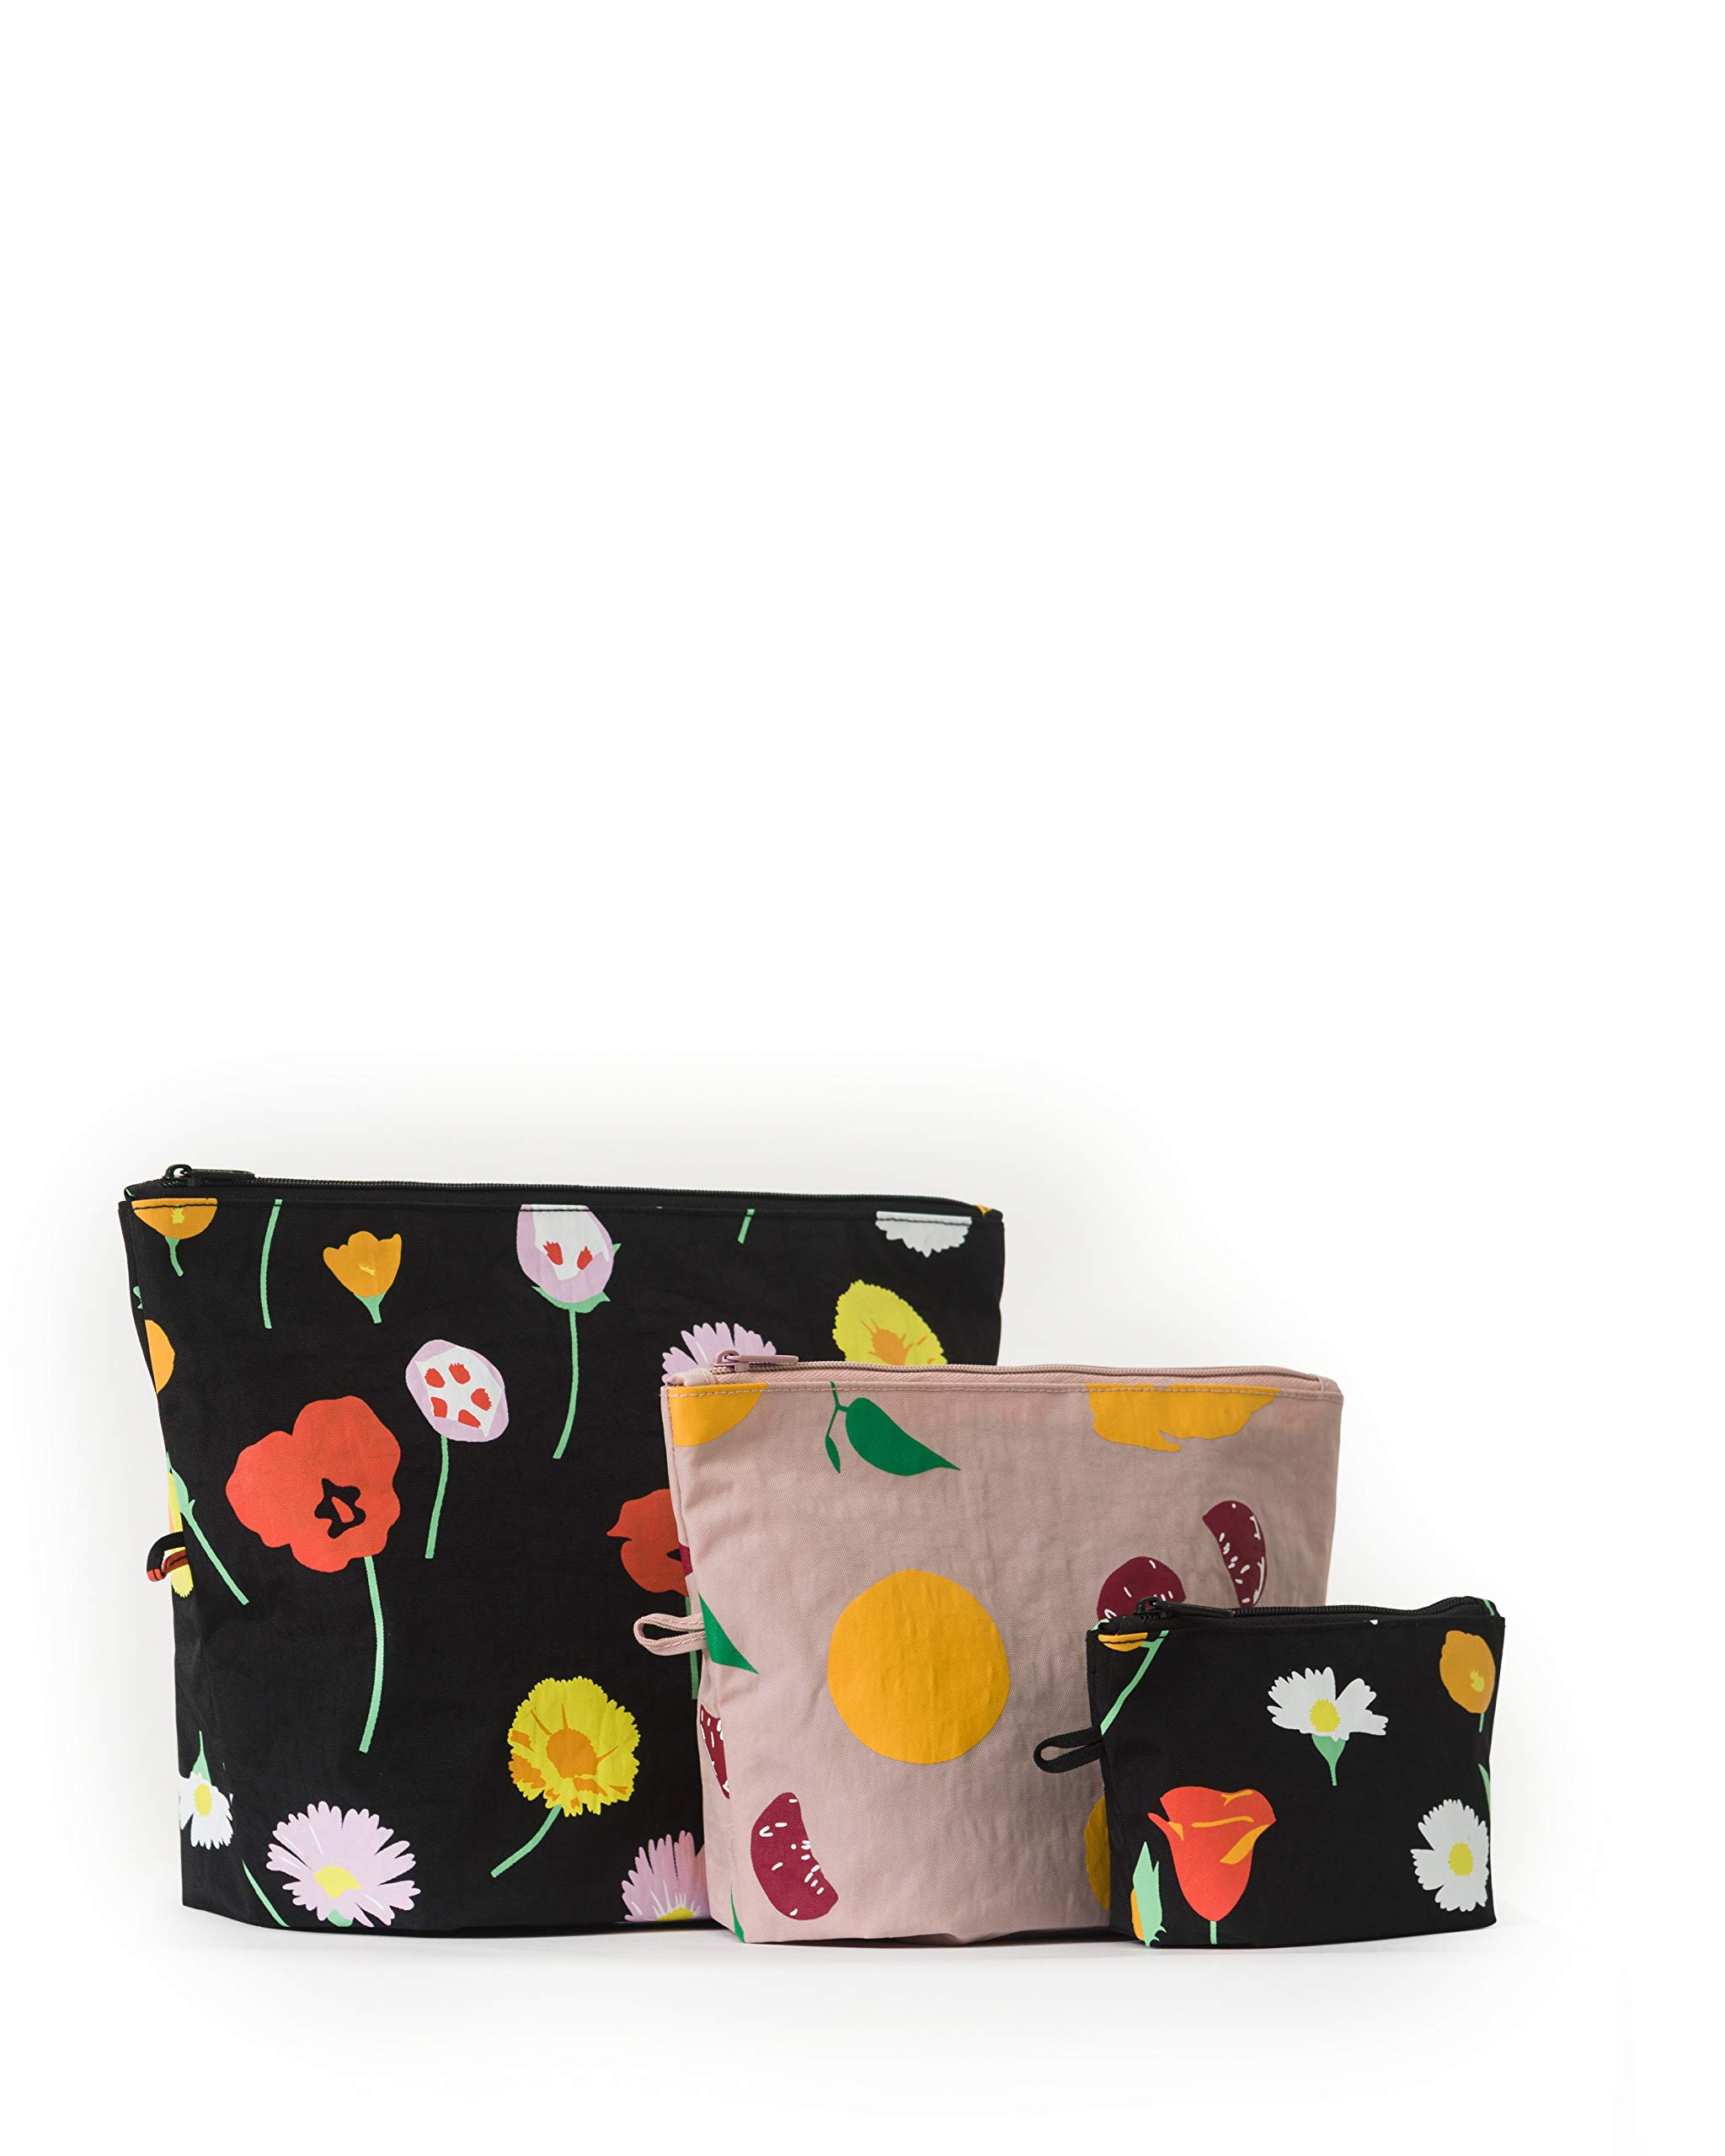 BAGGU Go Pouch Set, Expandable Nylon Zip Pouch 3 Pack for Travel and Organization, Flora